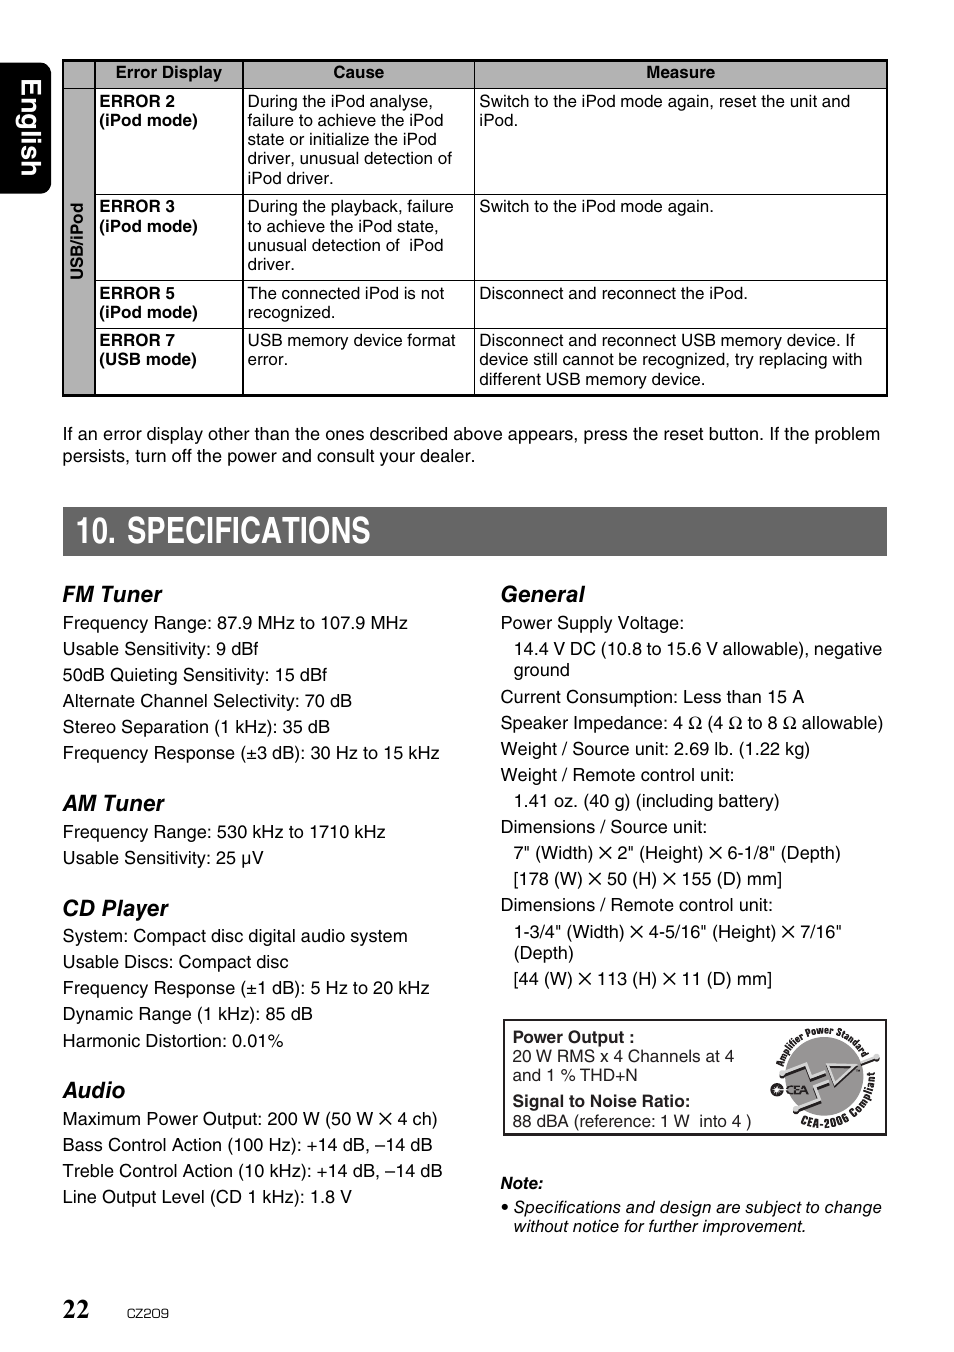 specifications english 22 clarion cz209 user manual page 22 23 rh manualsdir com Instruction Manual Example User Guide